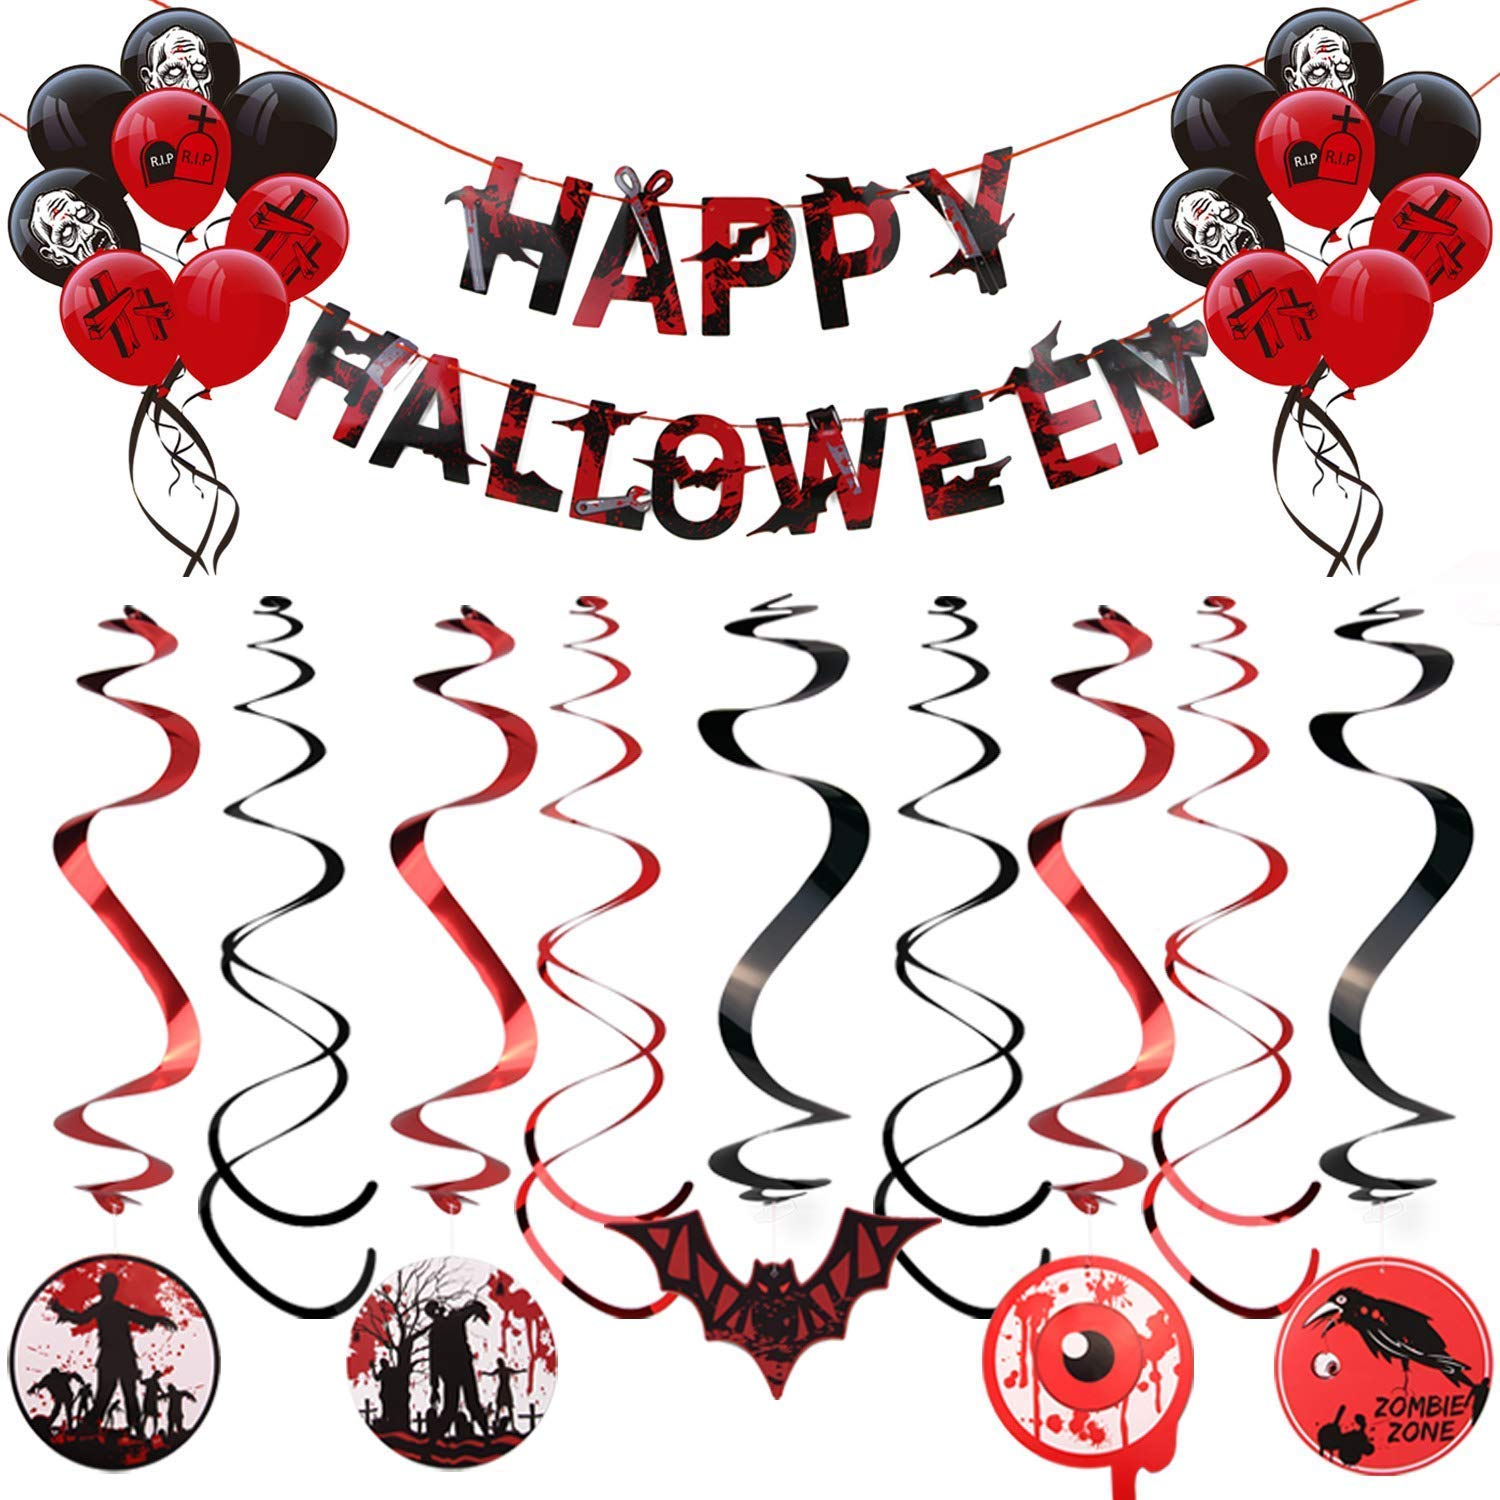 Jeyhoop Scary Hanging Happy Halloween Letters Decorations Kit Trick or Treat Theme Parties Festival Gifts Ceiling Wall Accessories with 1pcs Banner 2pack Rotating Foil Swirls 16pcs Balloons J433280001